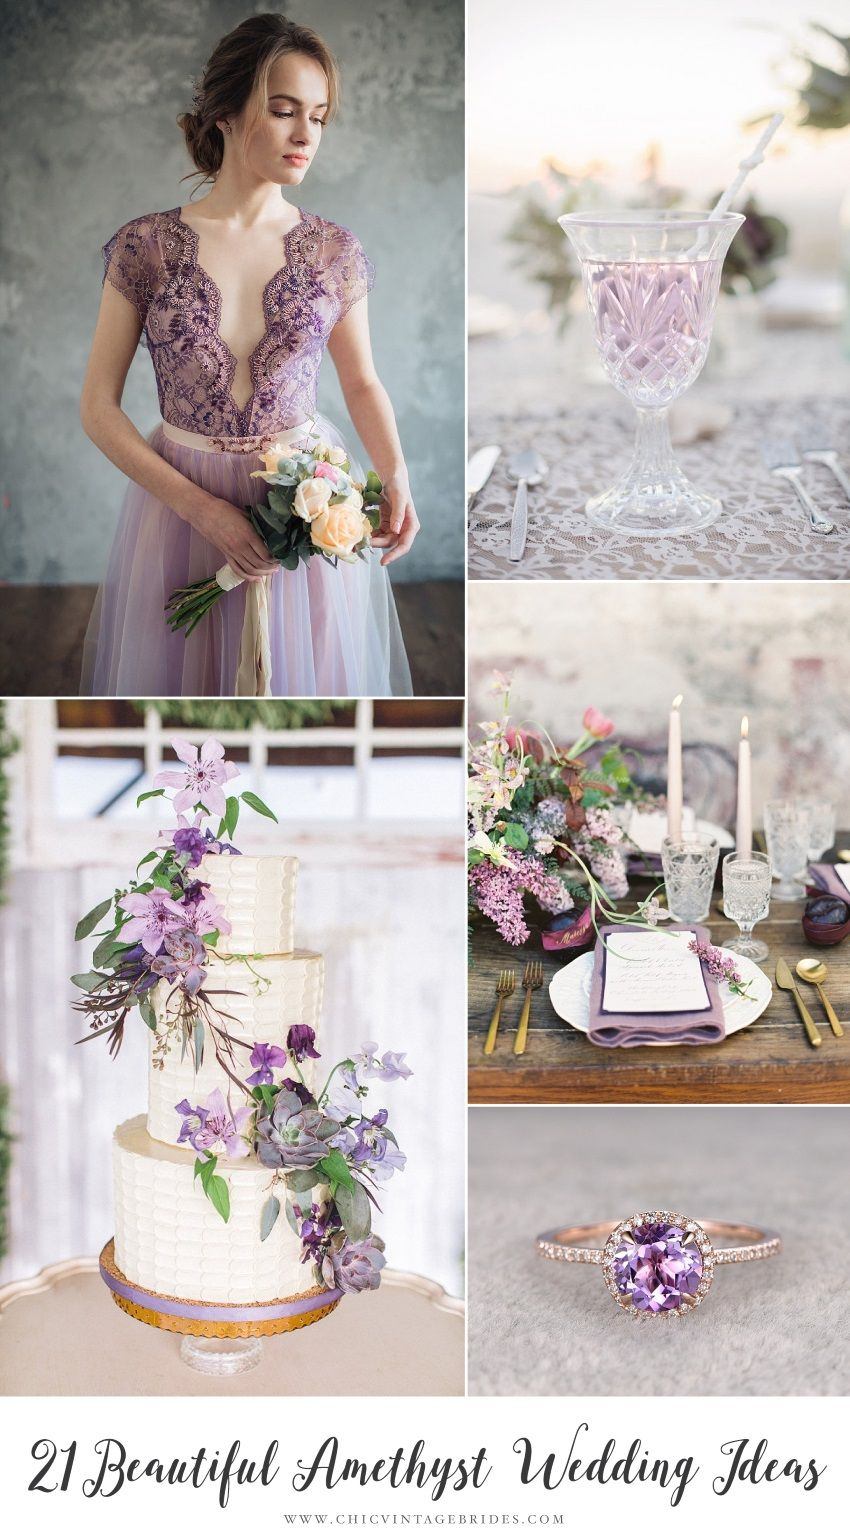 21 Ideas for a Breathtaking Amethyst Wedding | Amethysts, Romantic ...